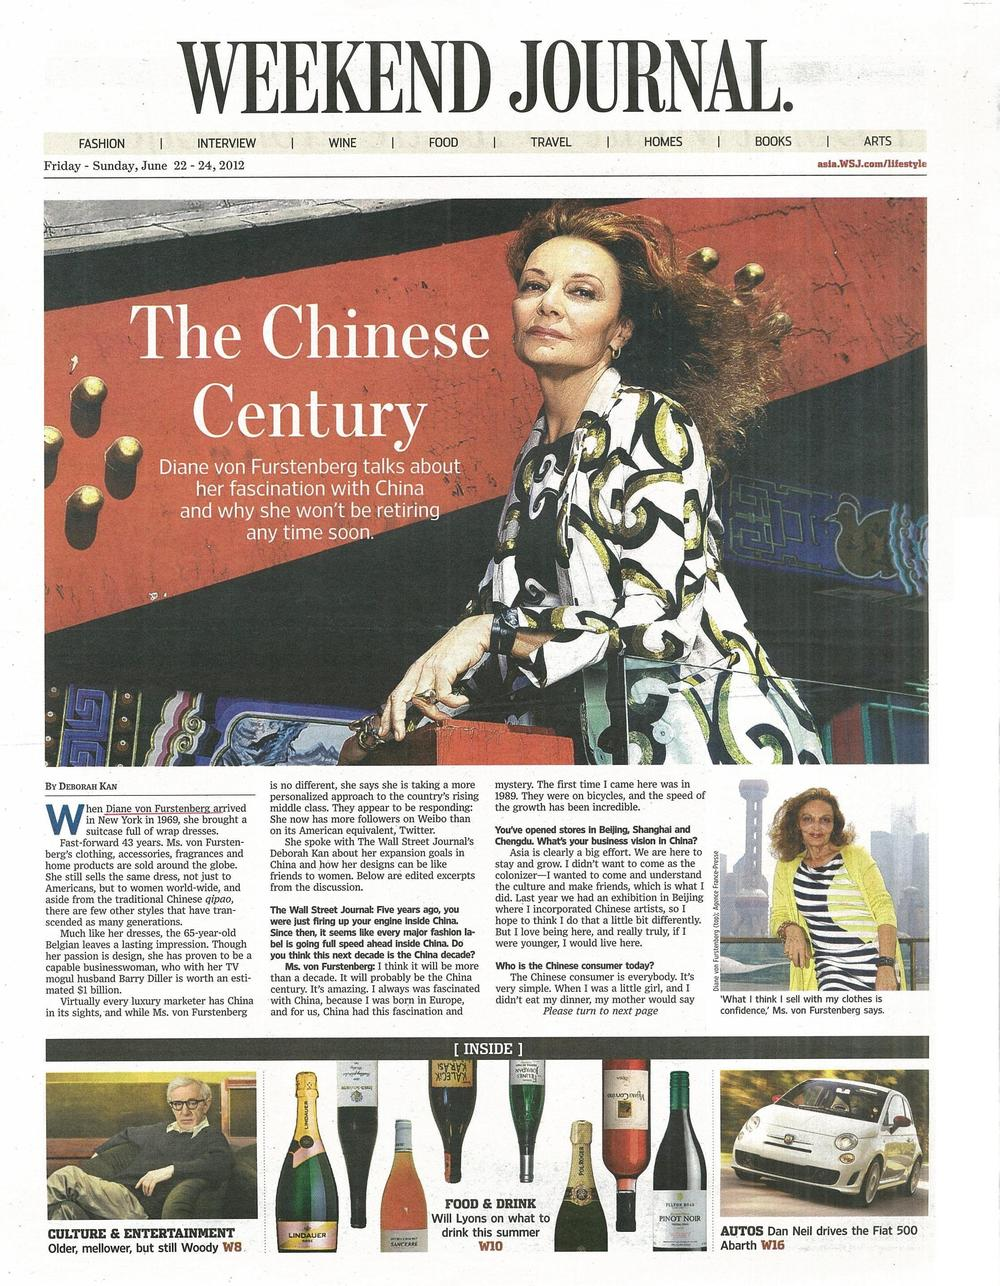 HK The Wall Street Journal Asia 01 - 22-24 Jun 12.jpg